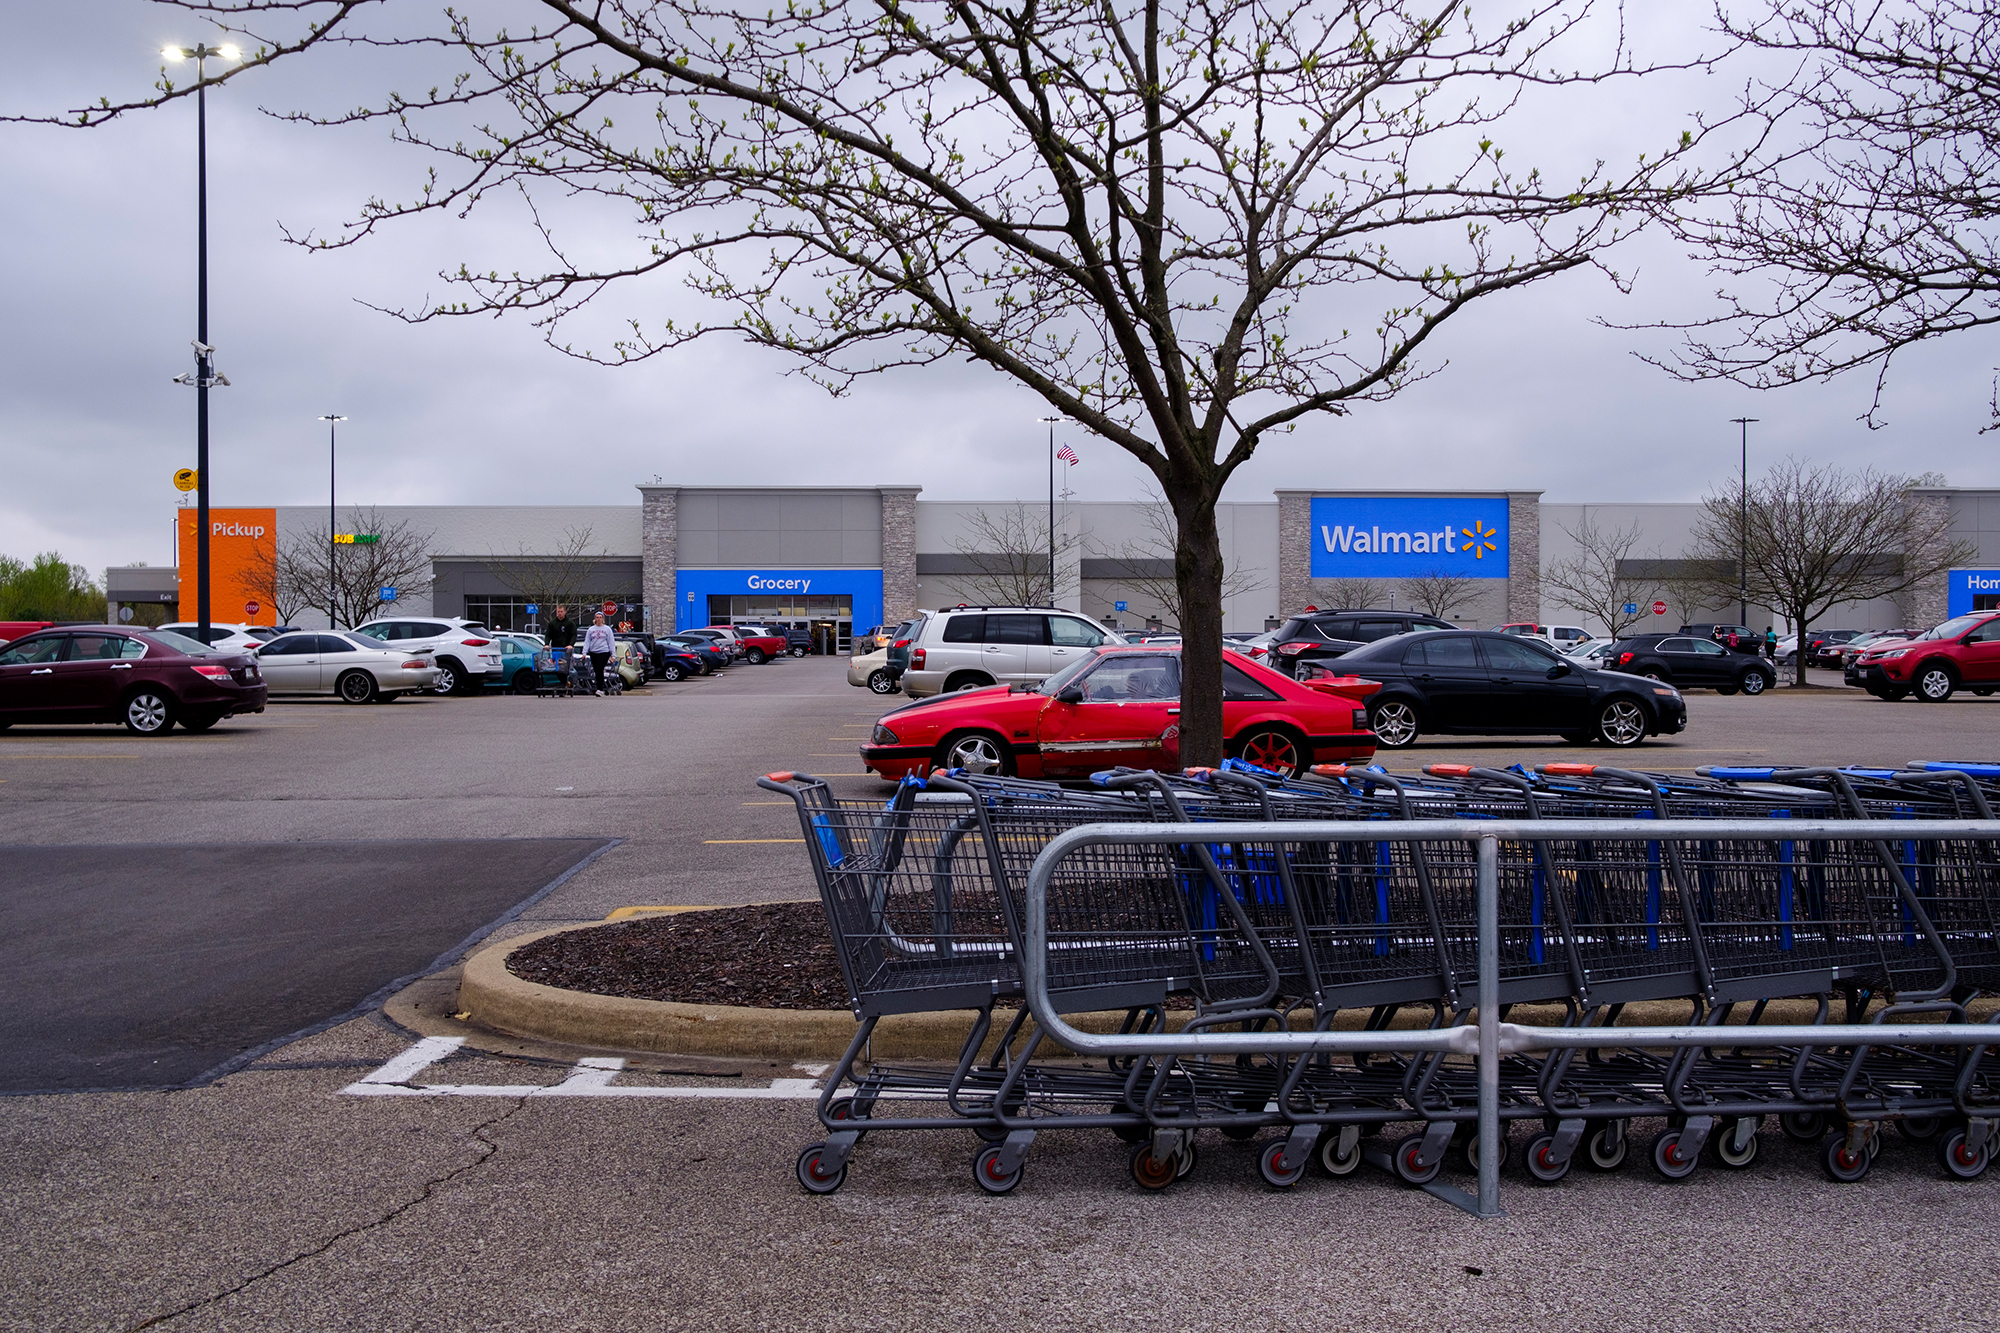 Walmart is transforming 160 of its parking lots into drive-in theaters